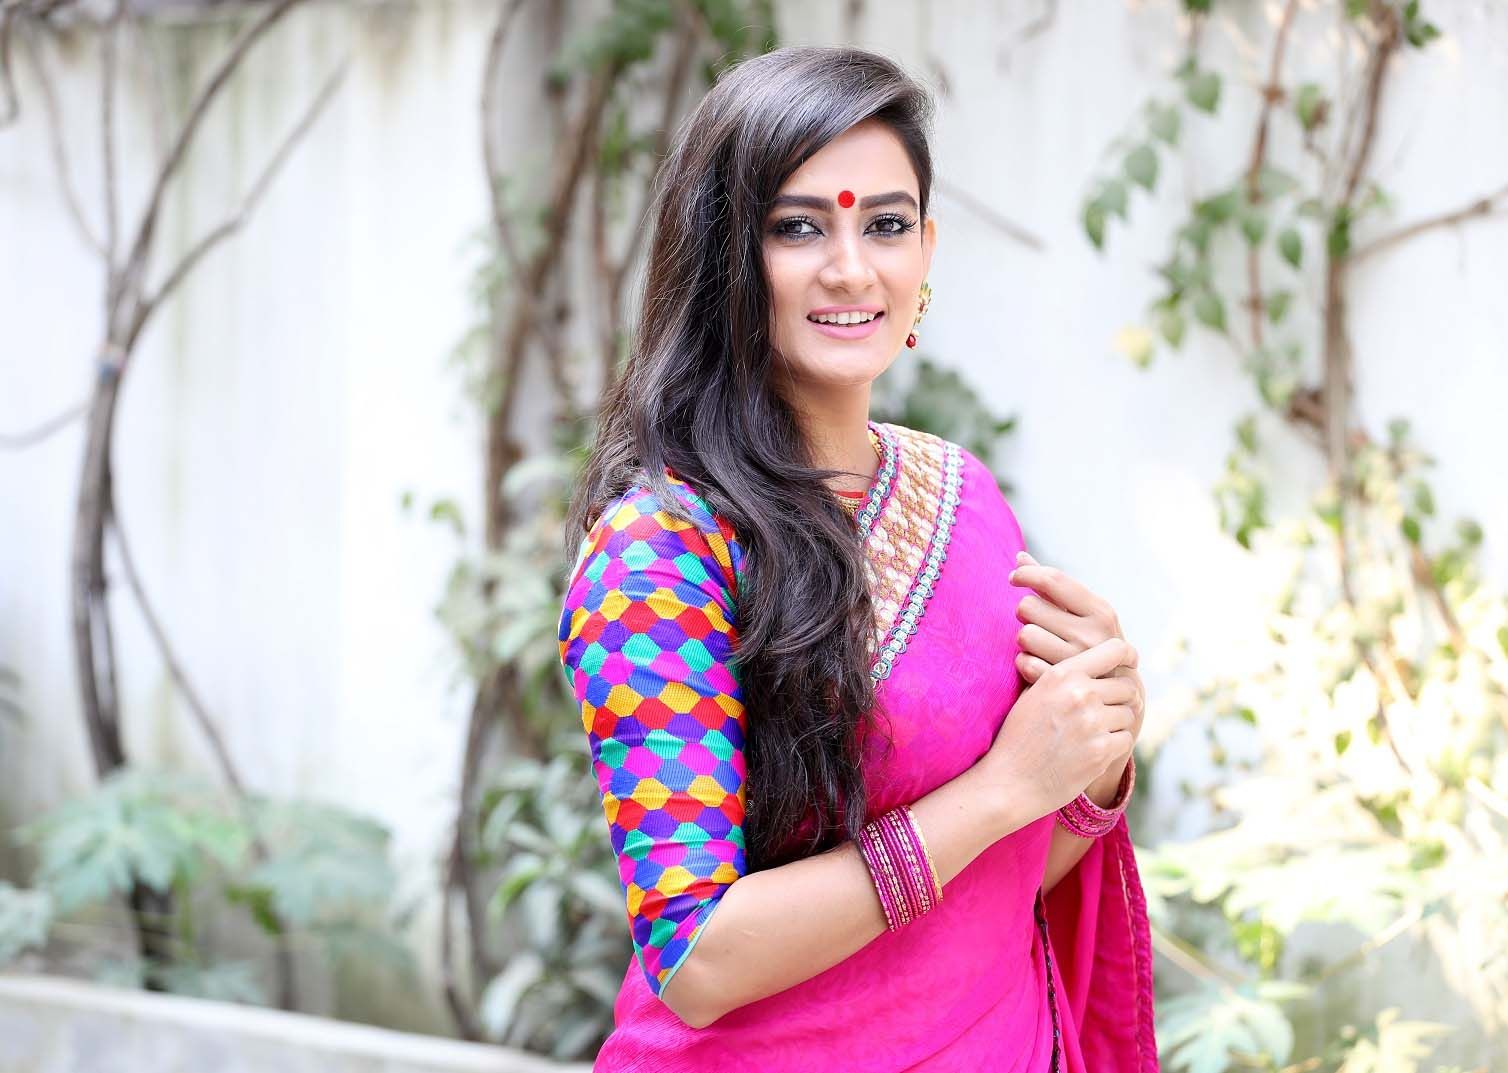 Aparna Ghosh is a Bangladeshis actress and model who was a